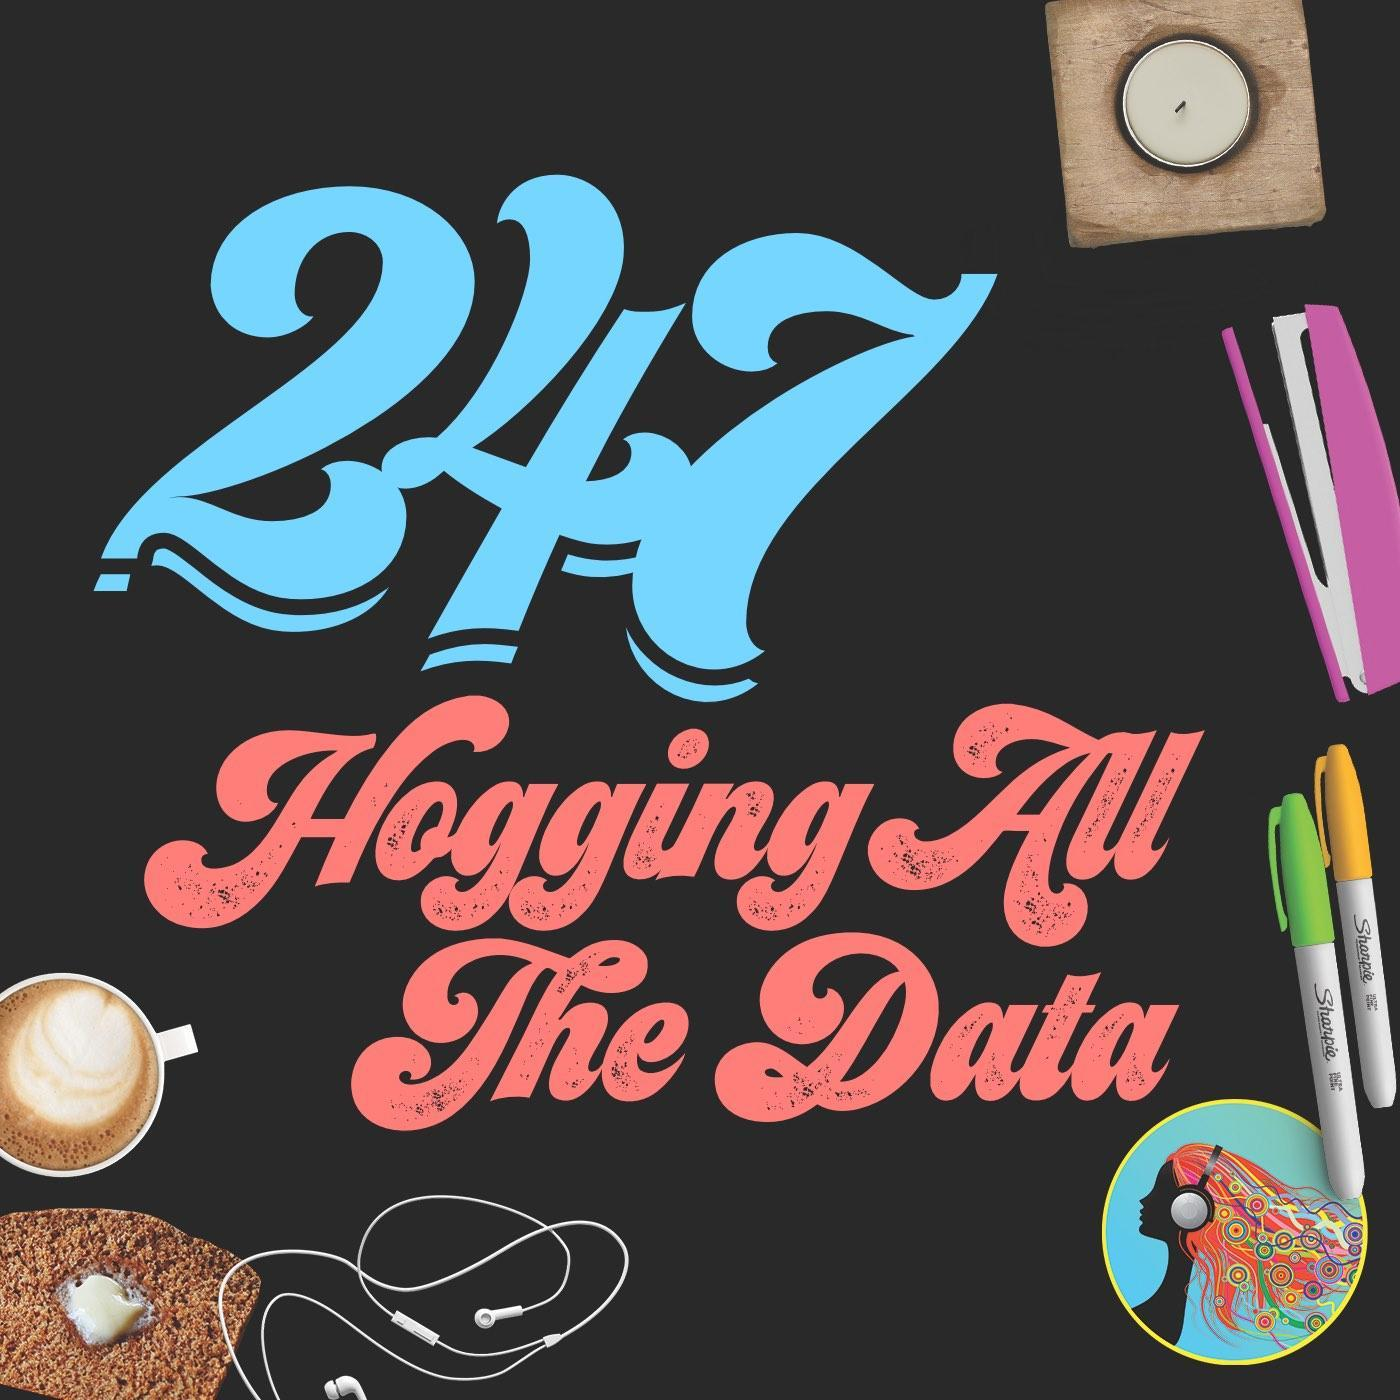 247 Hogging All The Data